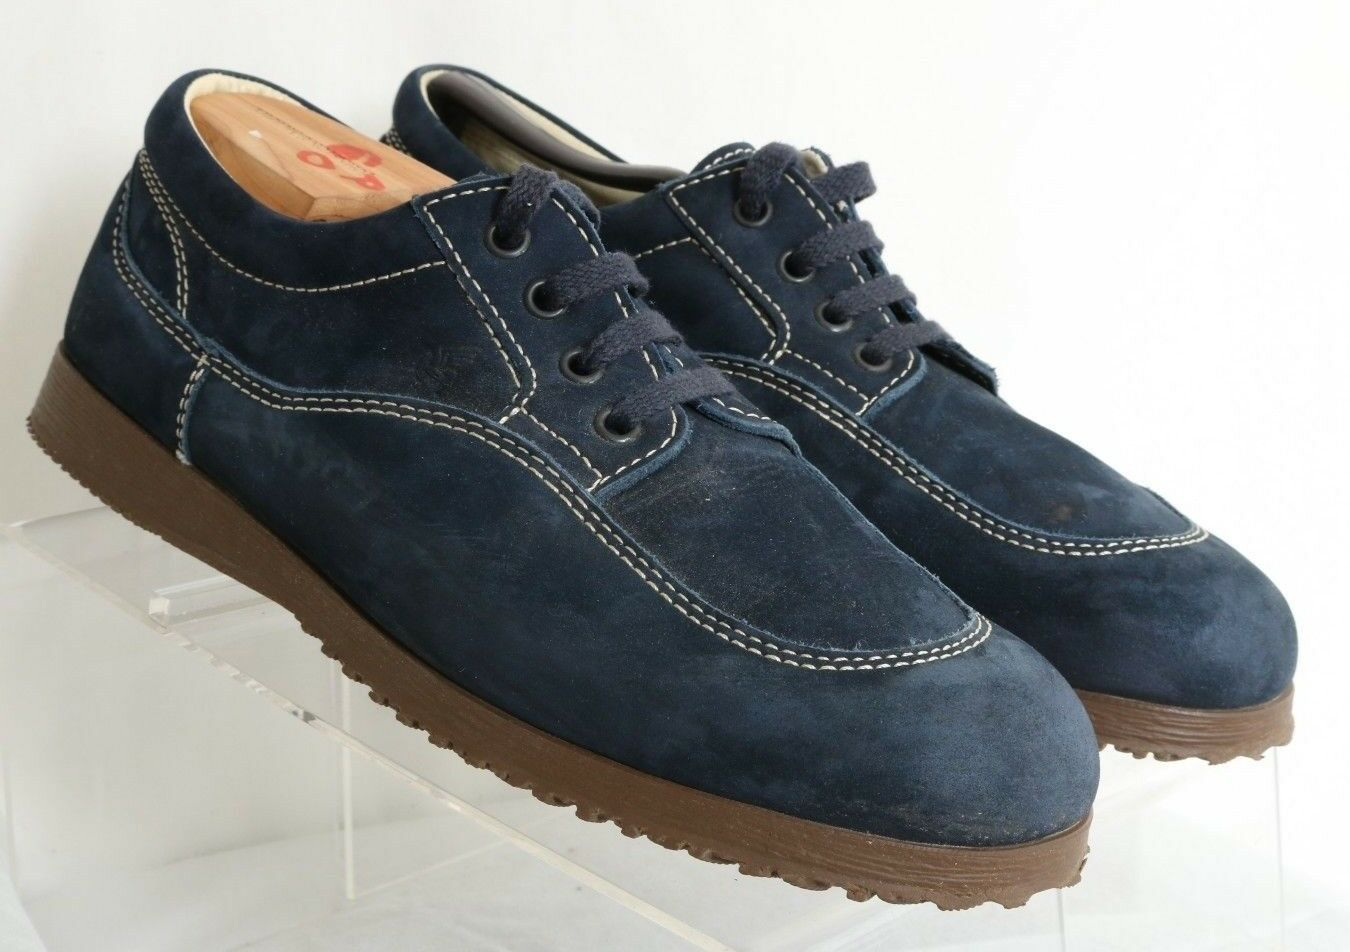 sconto online Hogan Navy blu Leather Lace-Up Lace-Up Lace-Up Stitch Casual 4-Eye Oxford Donna US 8  nuovo sadico